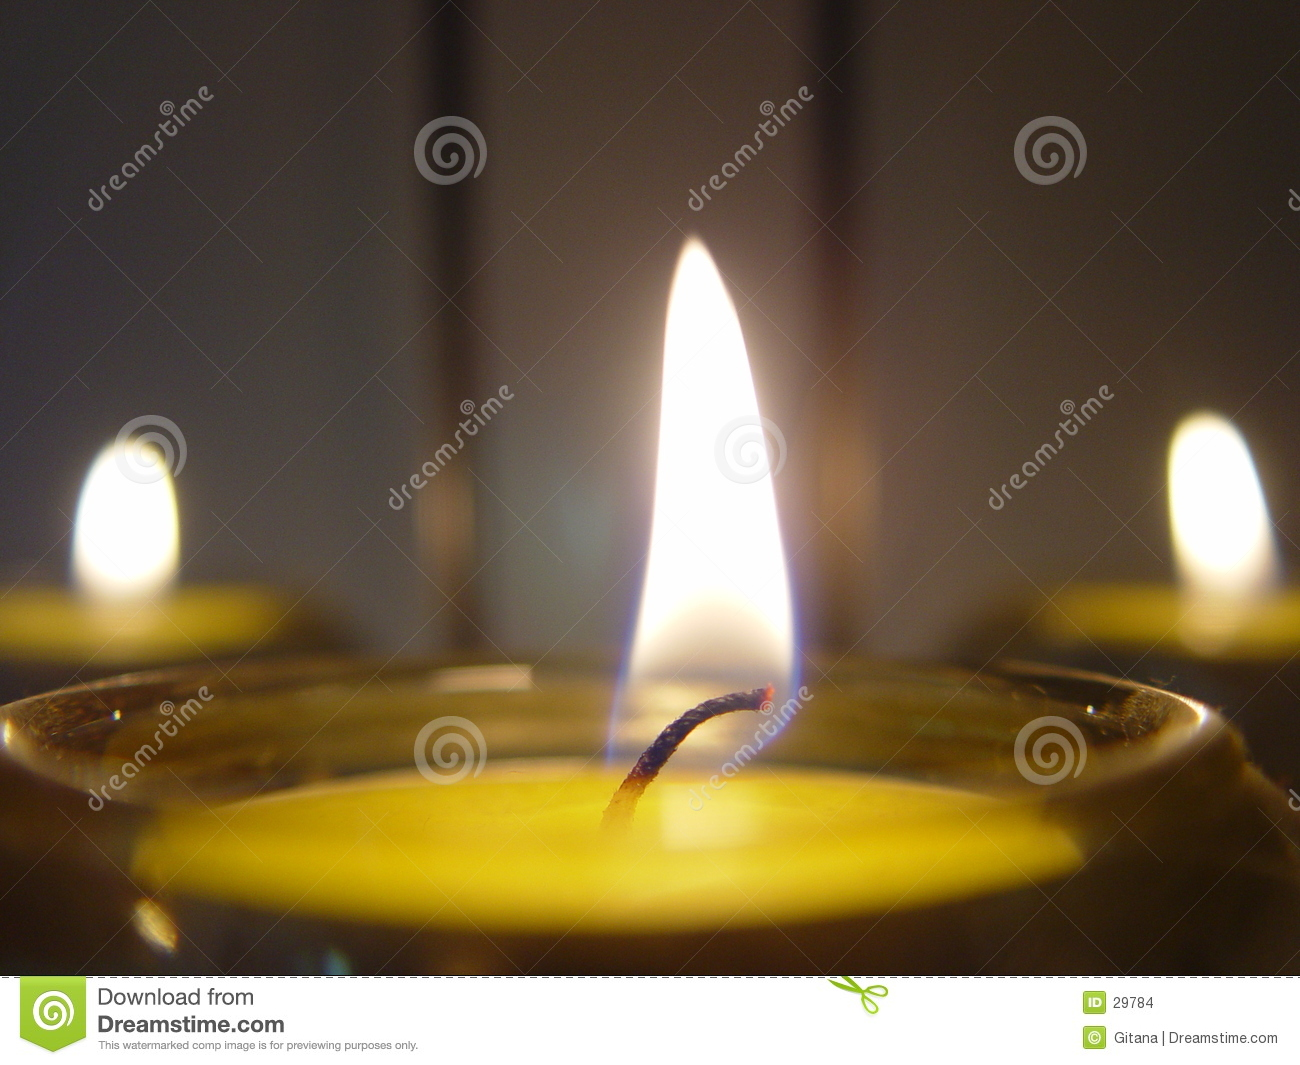 Download Tea lights or candles stock photo. Image of evening, dark - 29784